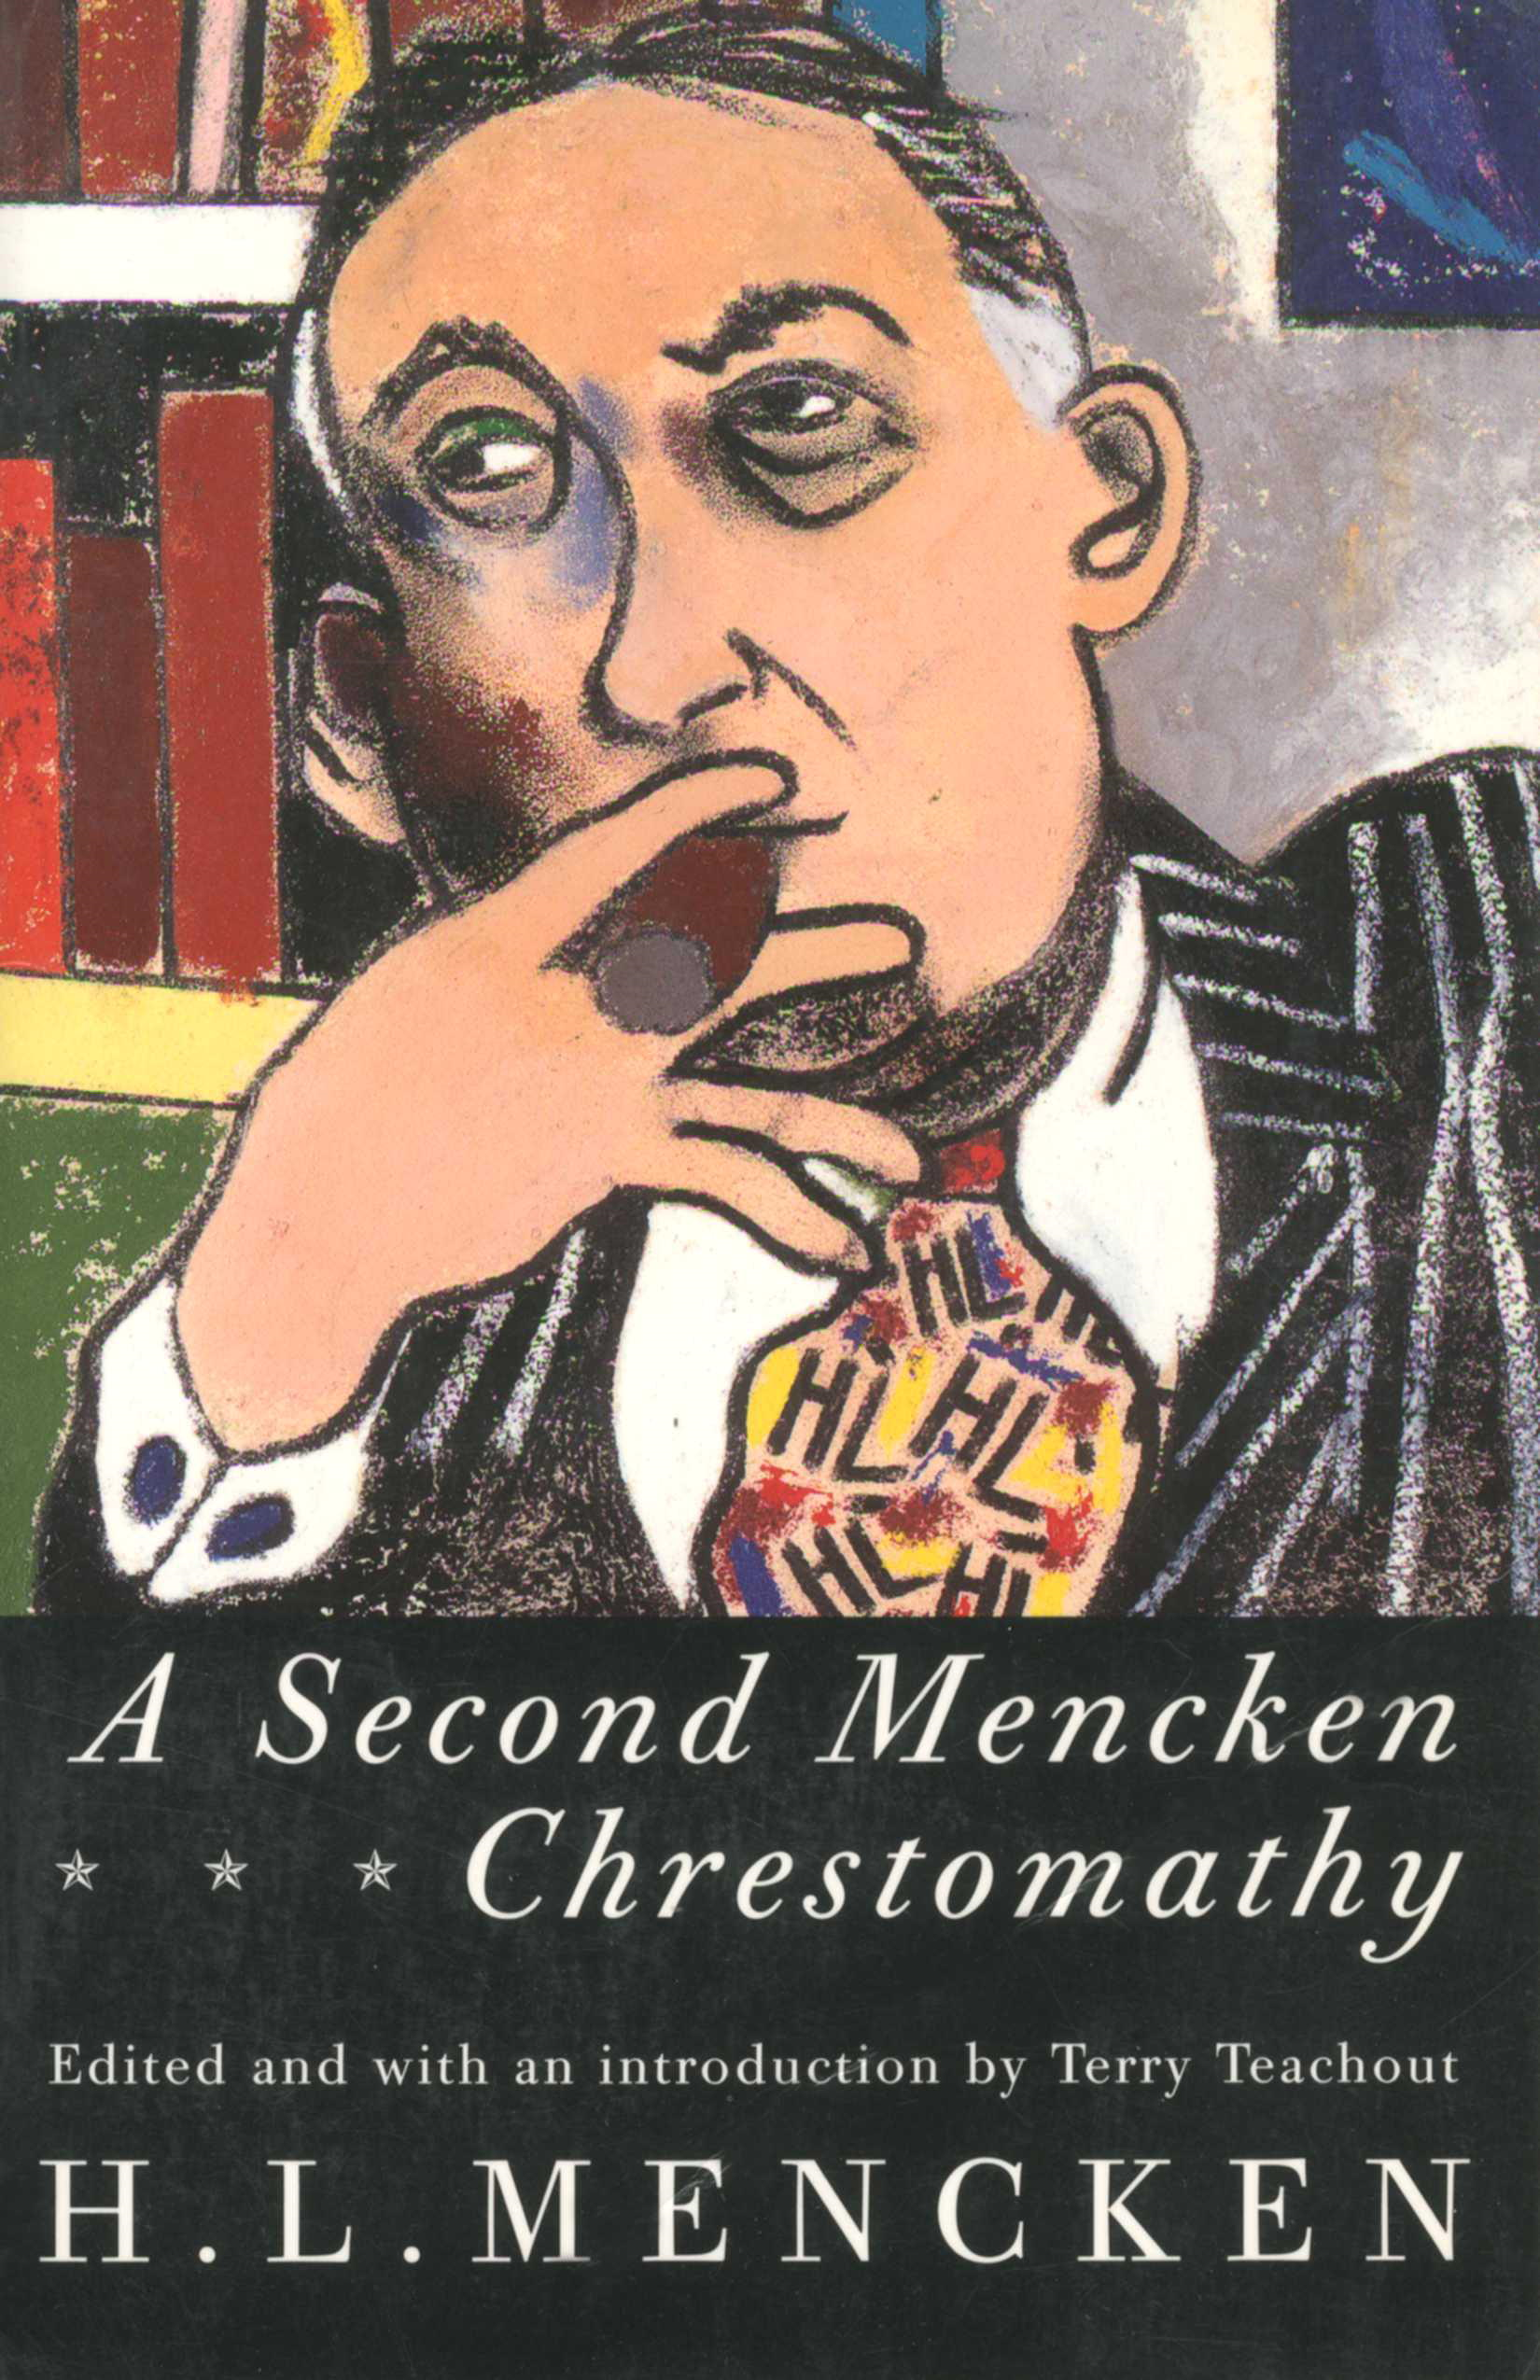 Second Mencken Chrestomathy